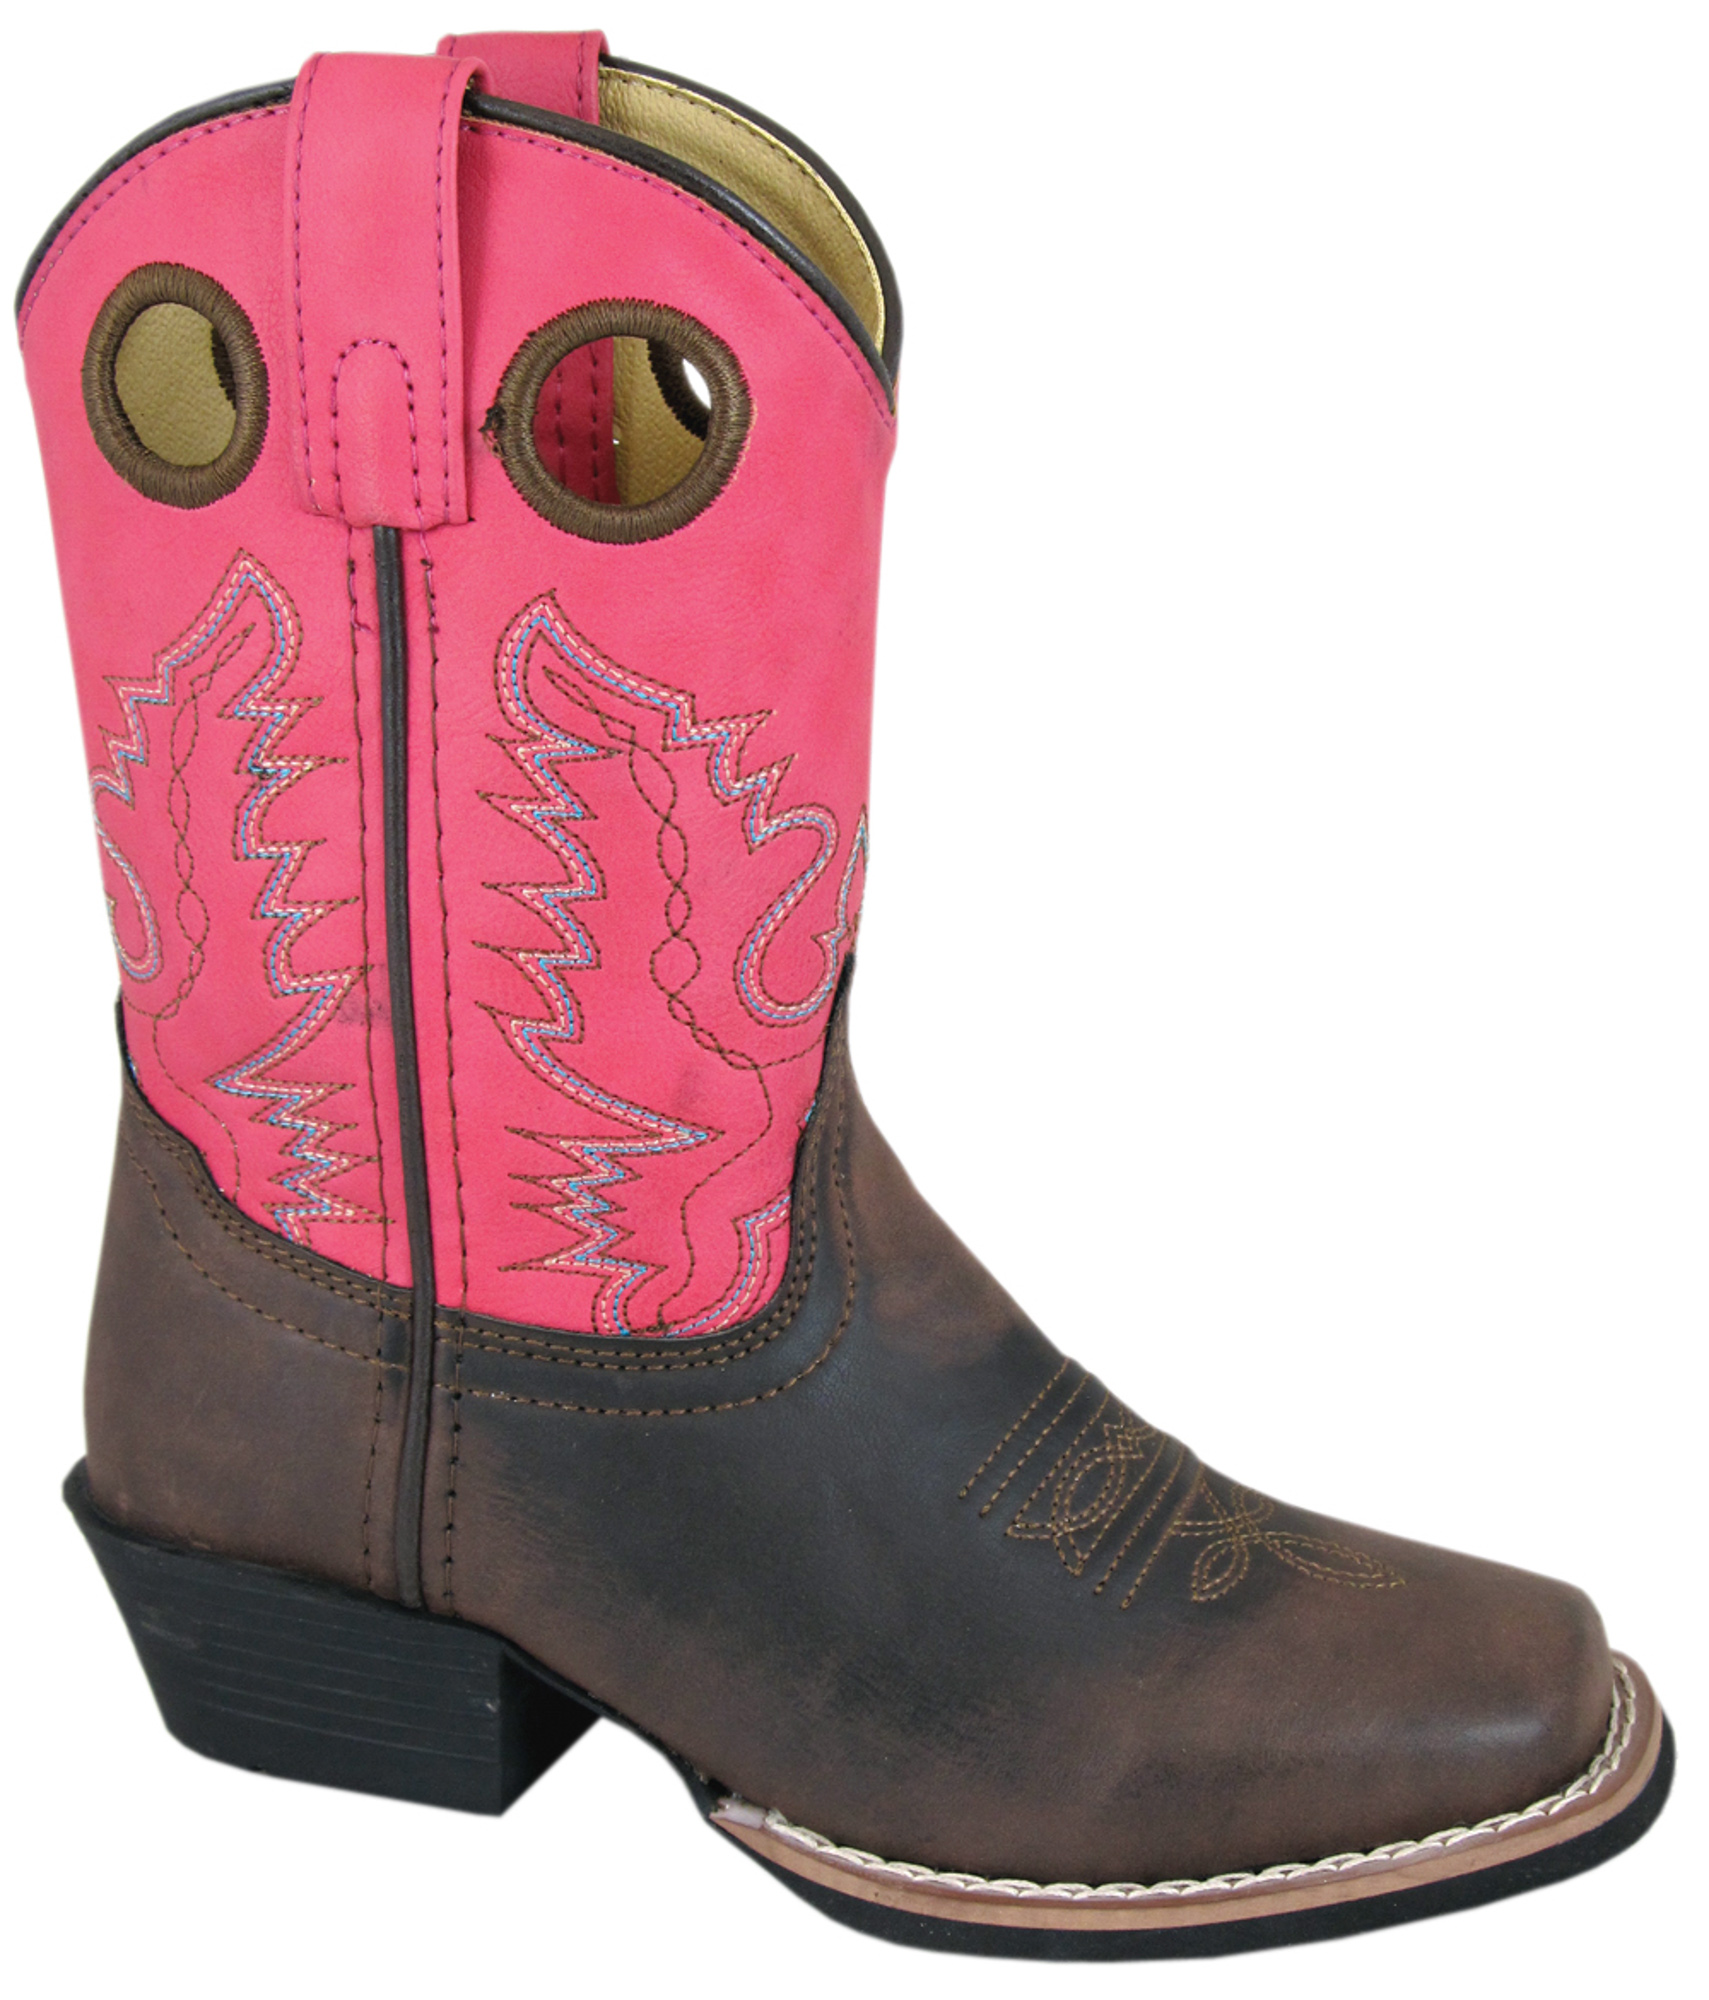 smoky mountain boots youth brown pink faux